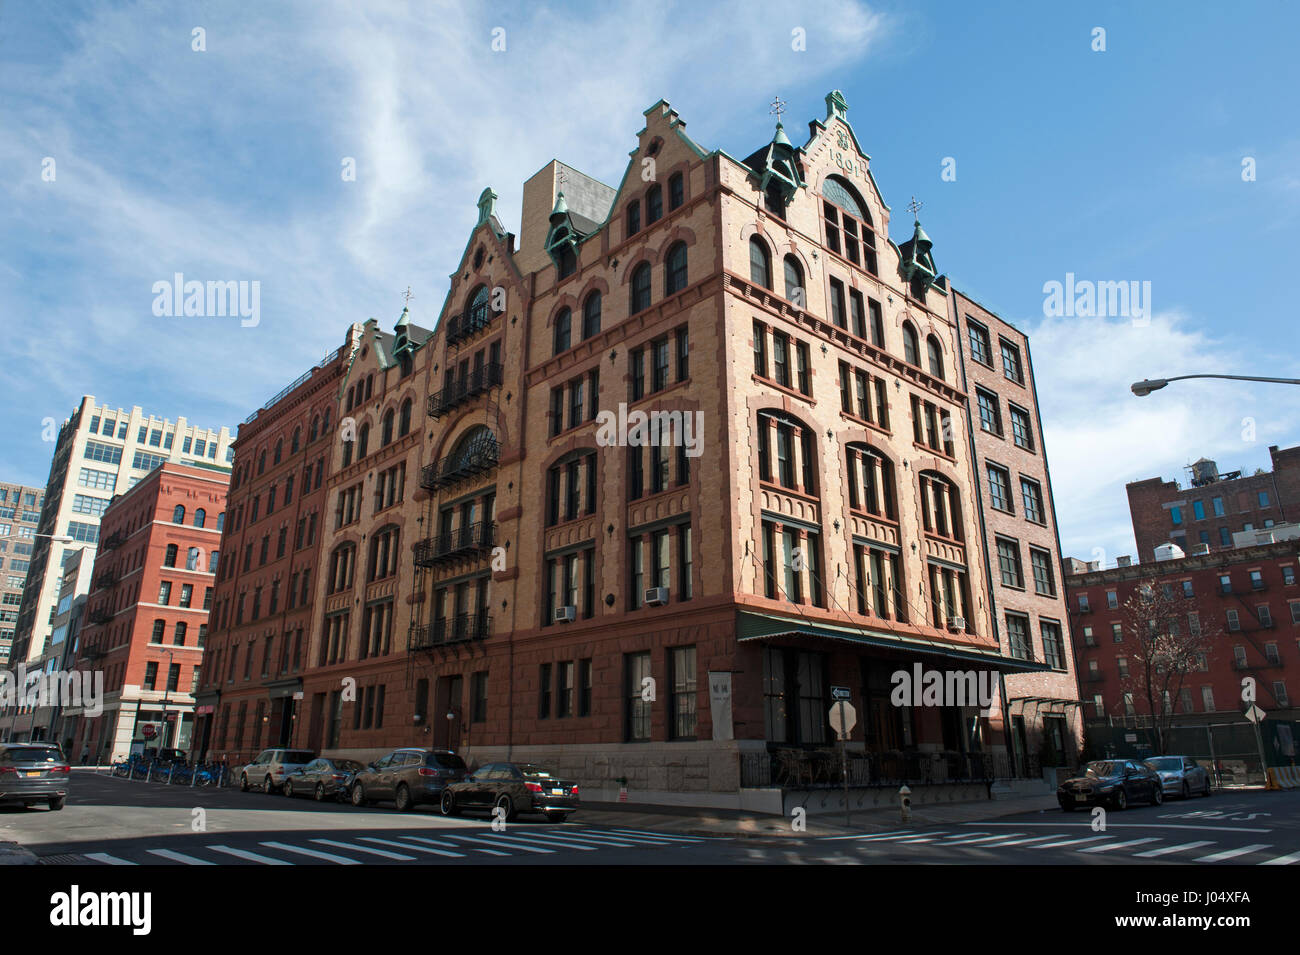 The Fleming Smith warehouse at 451 Washington St. in Tribeca was designed by Stephen Decatur Hatch. It dates from - Stock Image